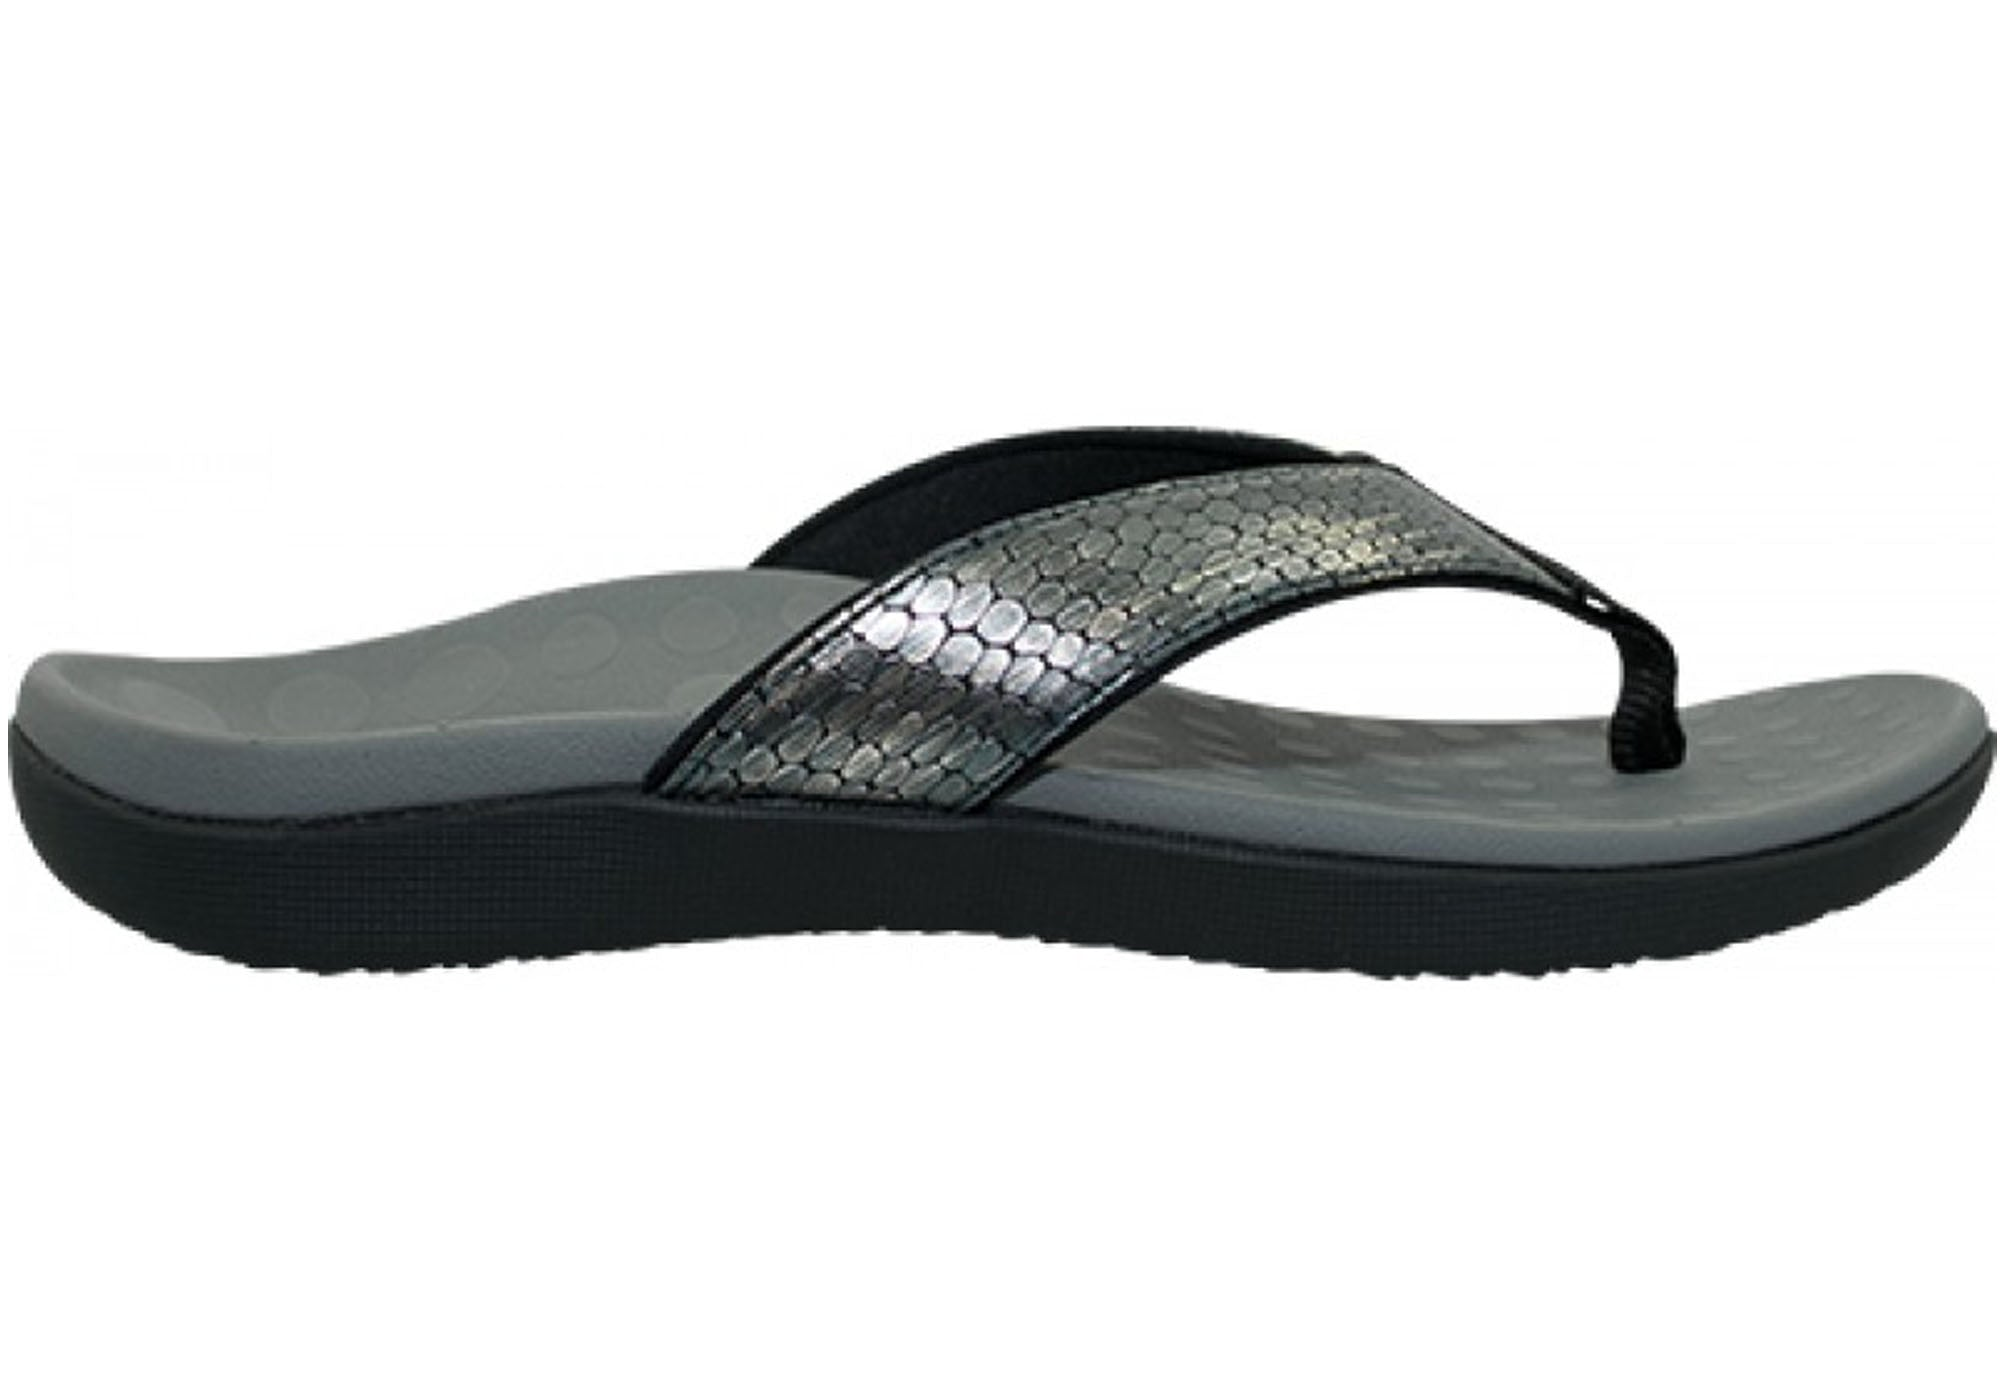 2bc656fc6 Home Scholl Orthaheel Sonoma II Womens Supportive Comfort Thongs Sandals.  Pewter Snake ...